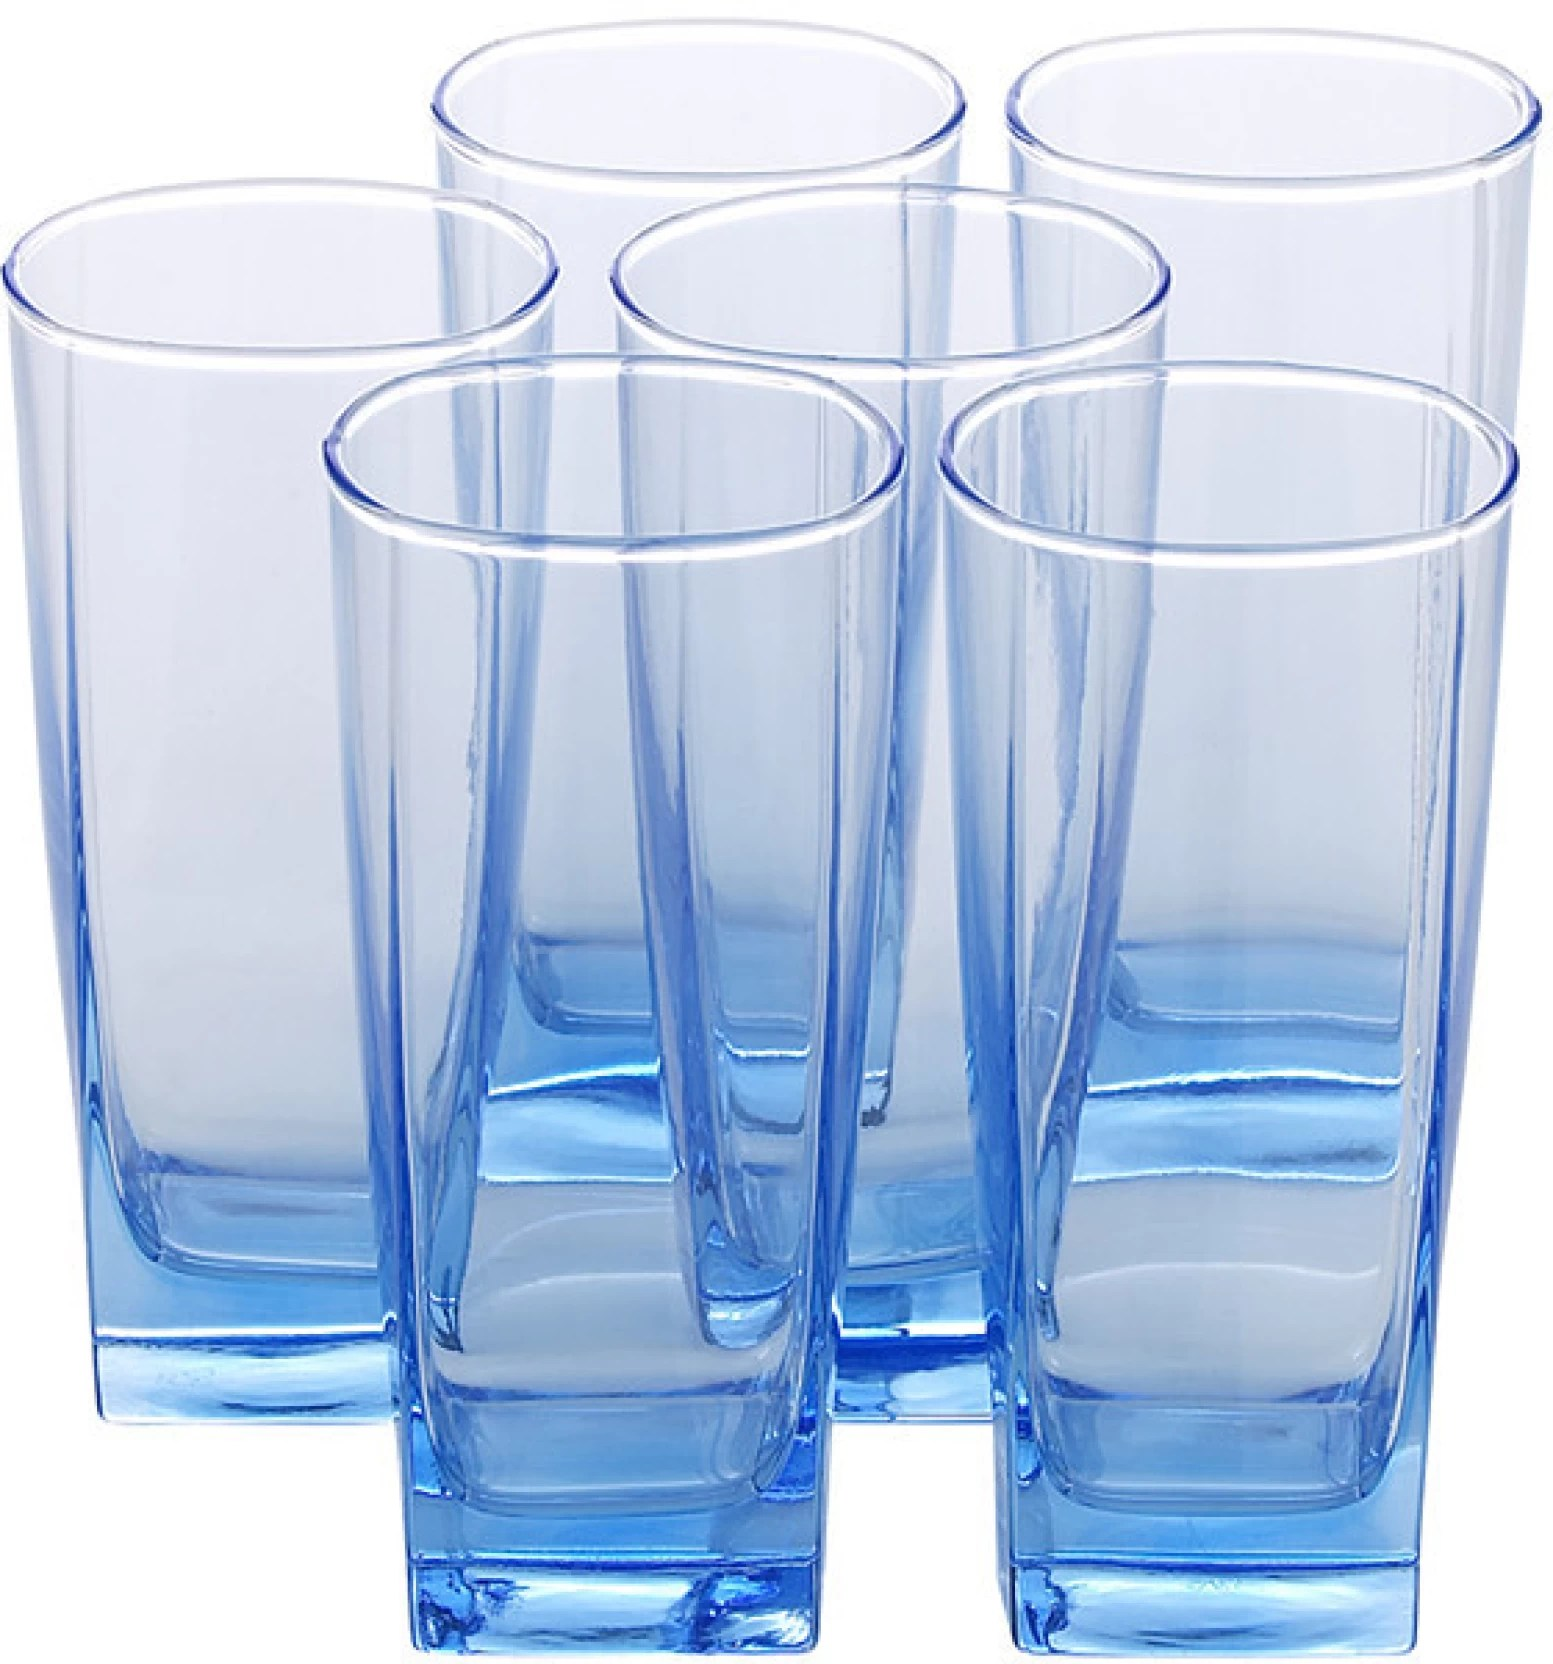 Luminarc Glass Luminarc B2212 Glass Set